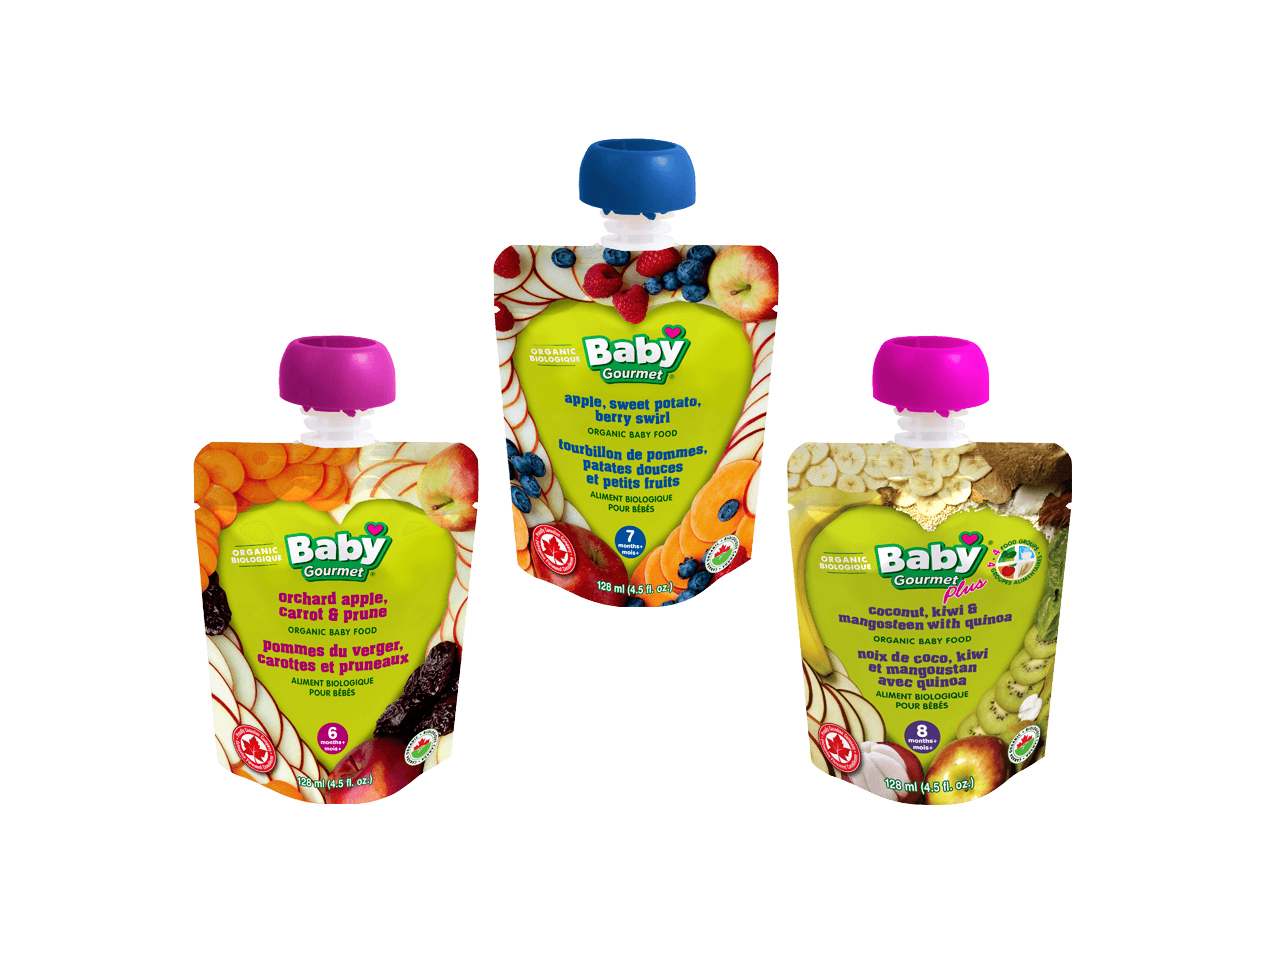 Baby Gourmet Organic Baby Food puree pouches